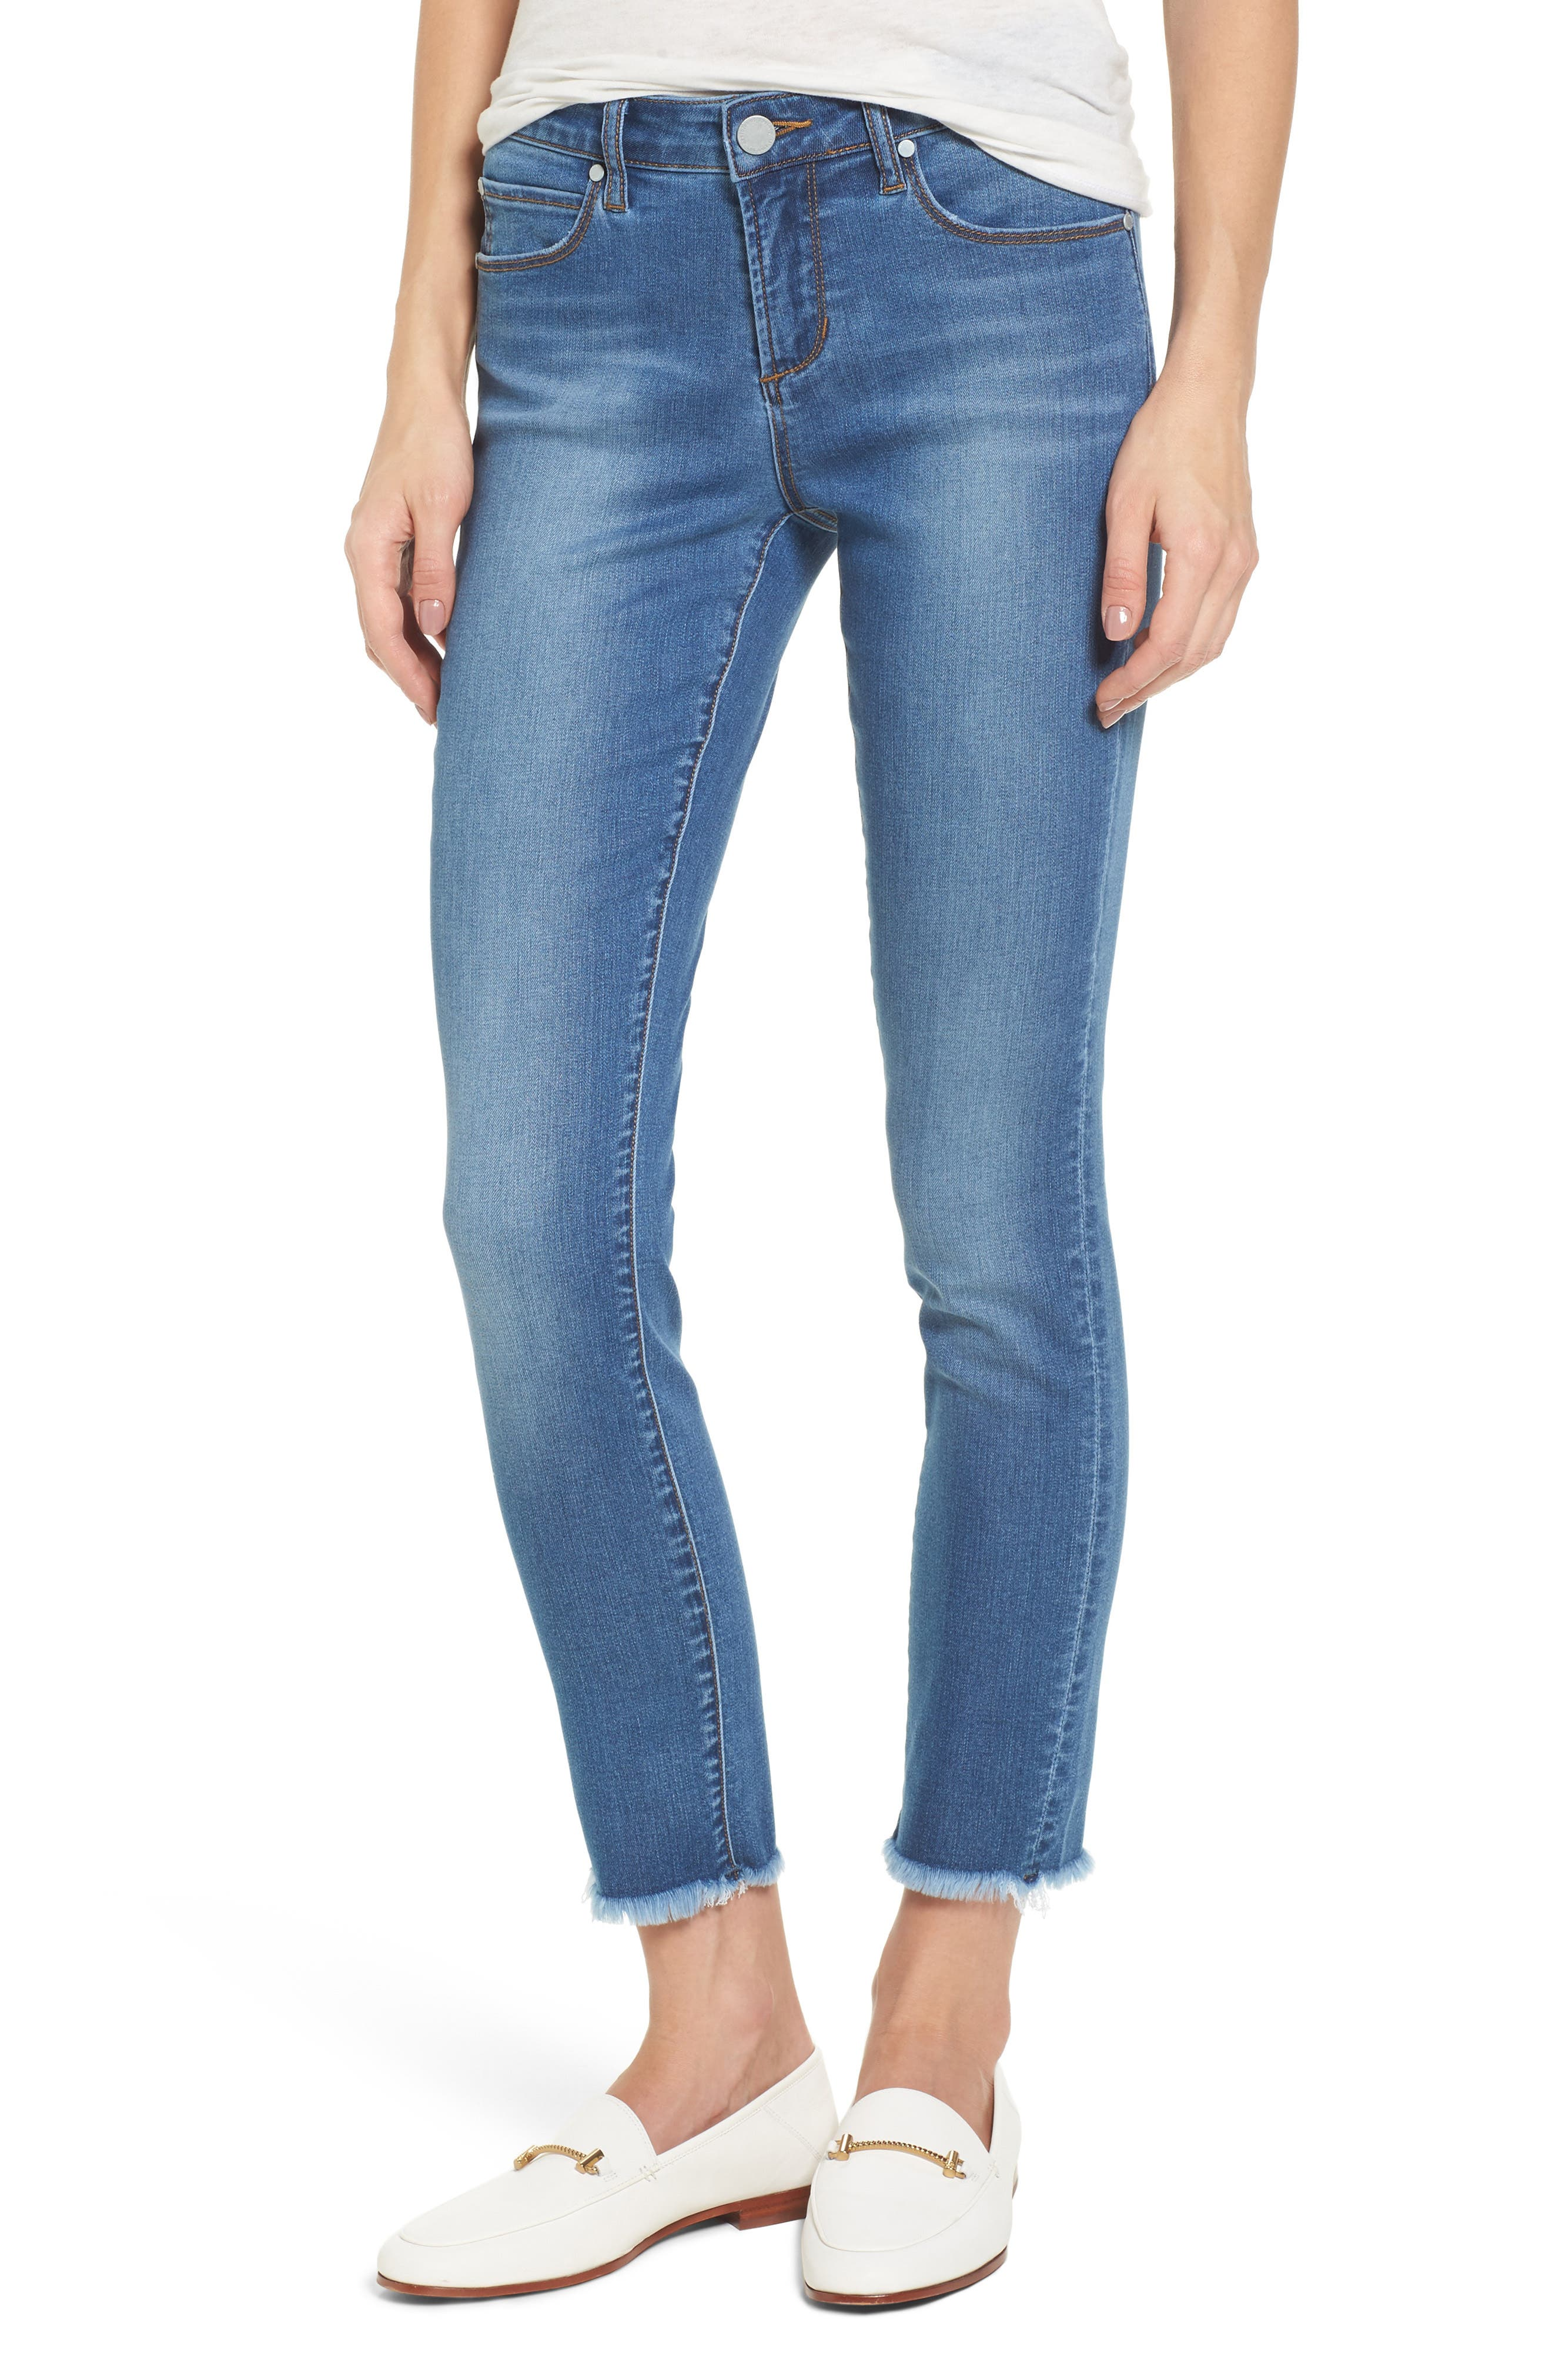 Articles of Society Carly Ankle Skinny Jeans (Sparta)